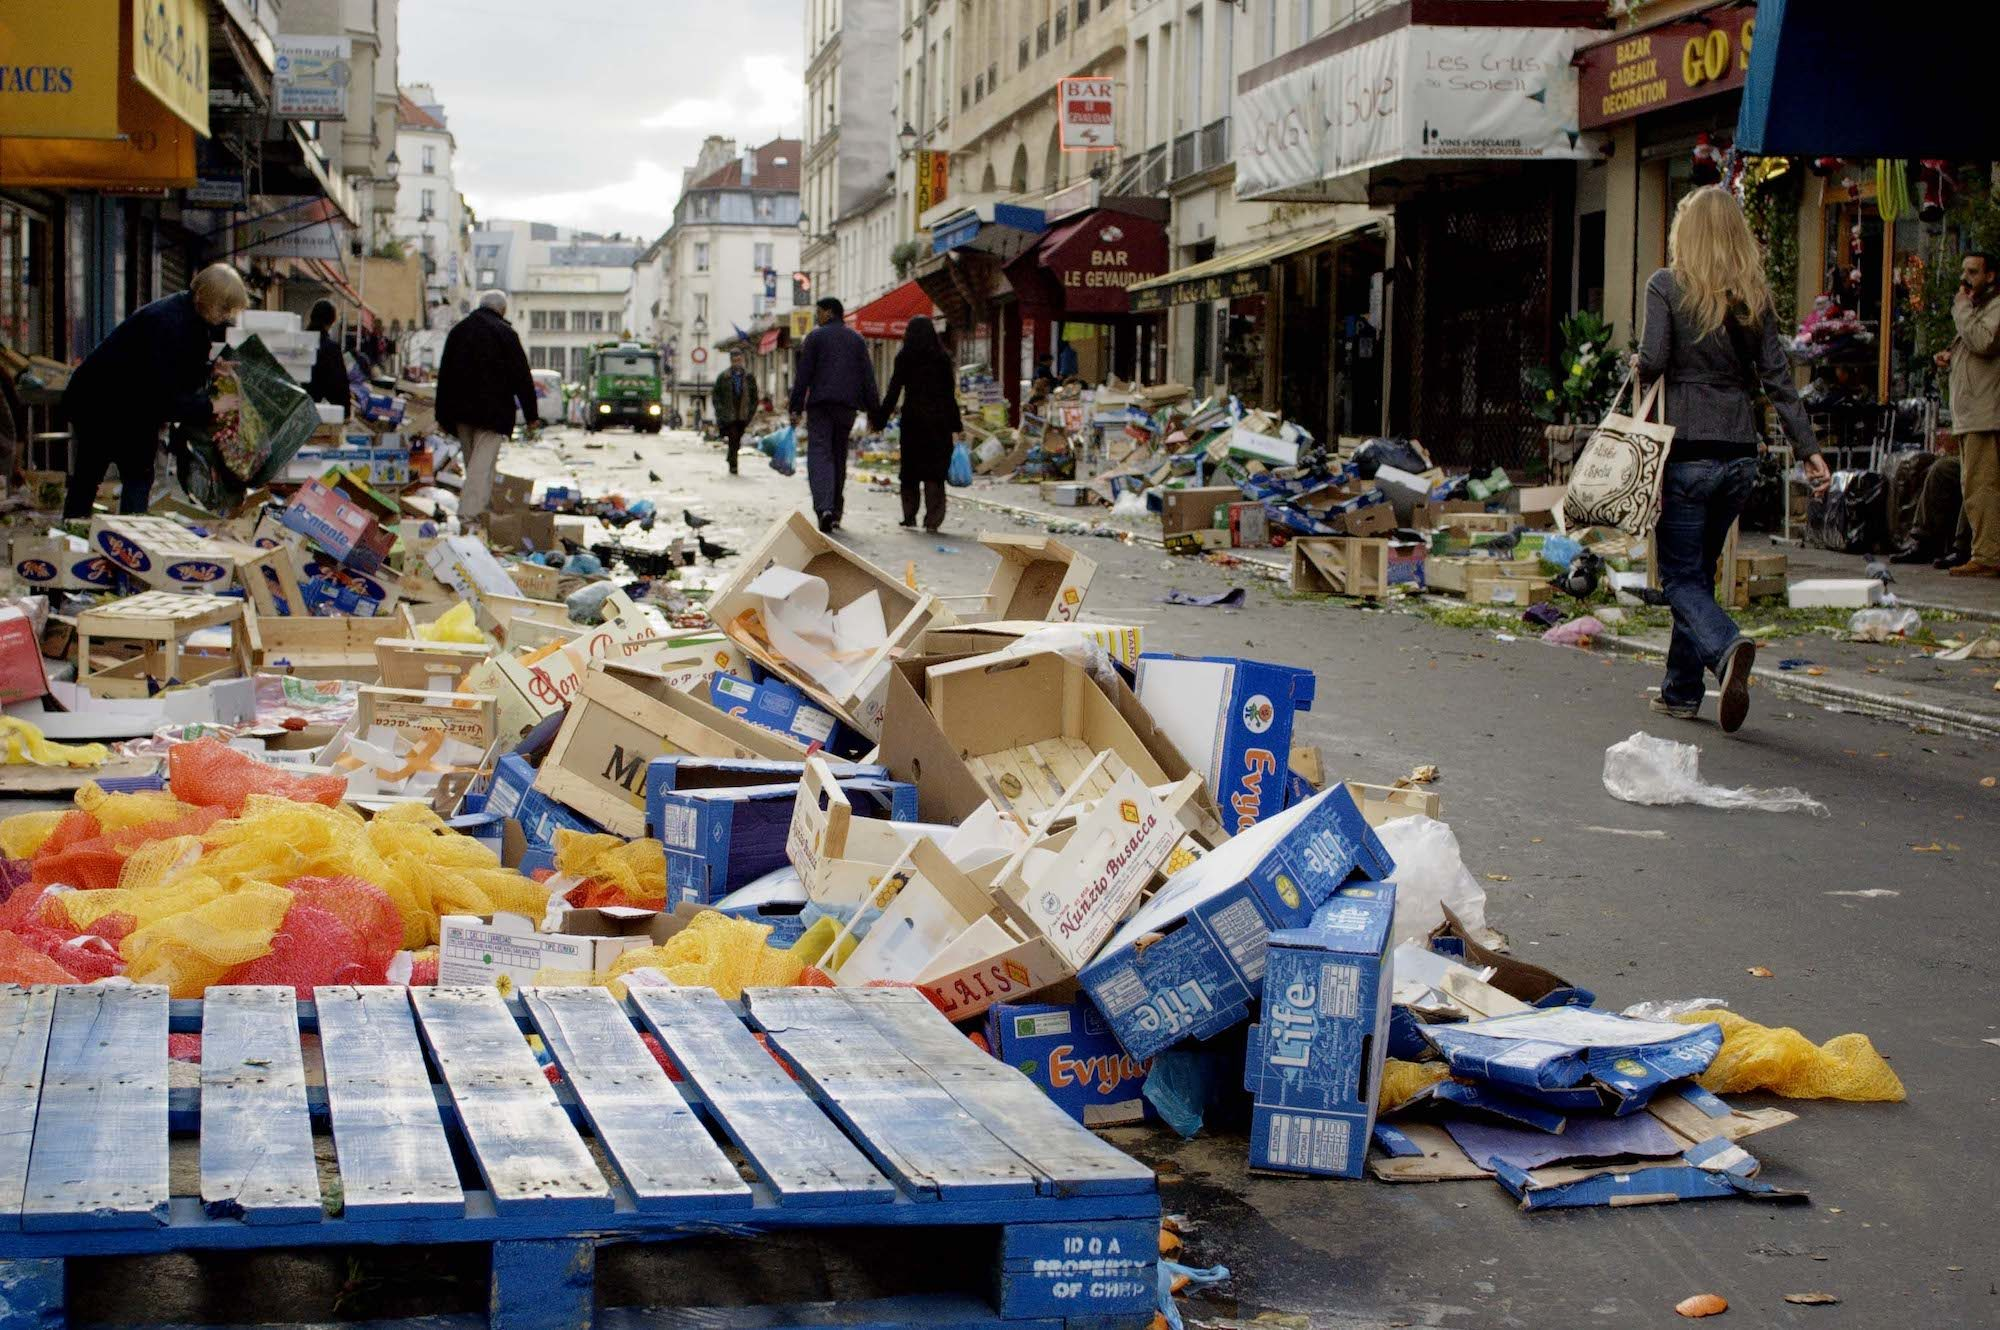 The waste after market days in Paris - HiP Paris Blog covers France's plastic ban which aims to reduce single-use plastic waste, linked to climate change and other environmental threats.